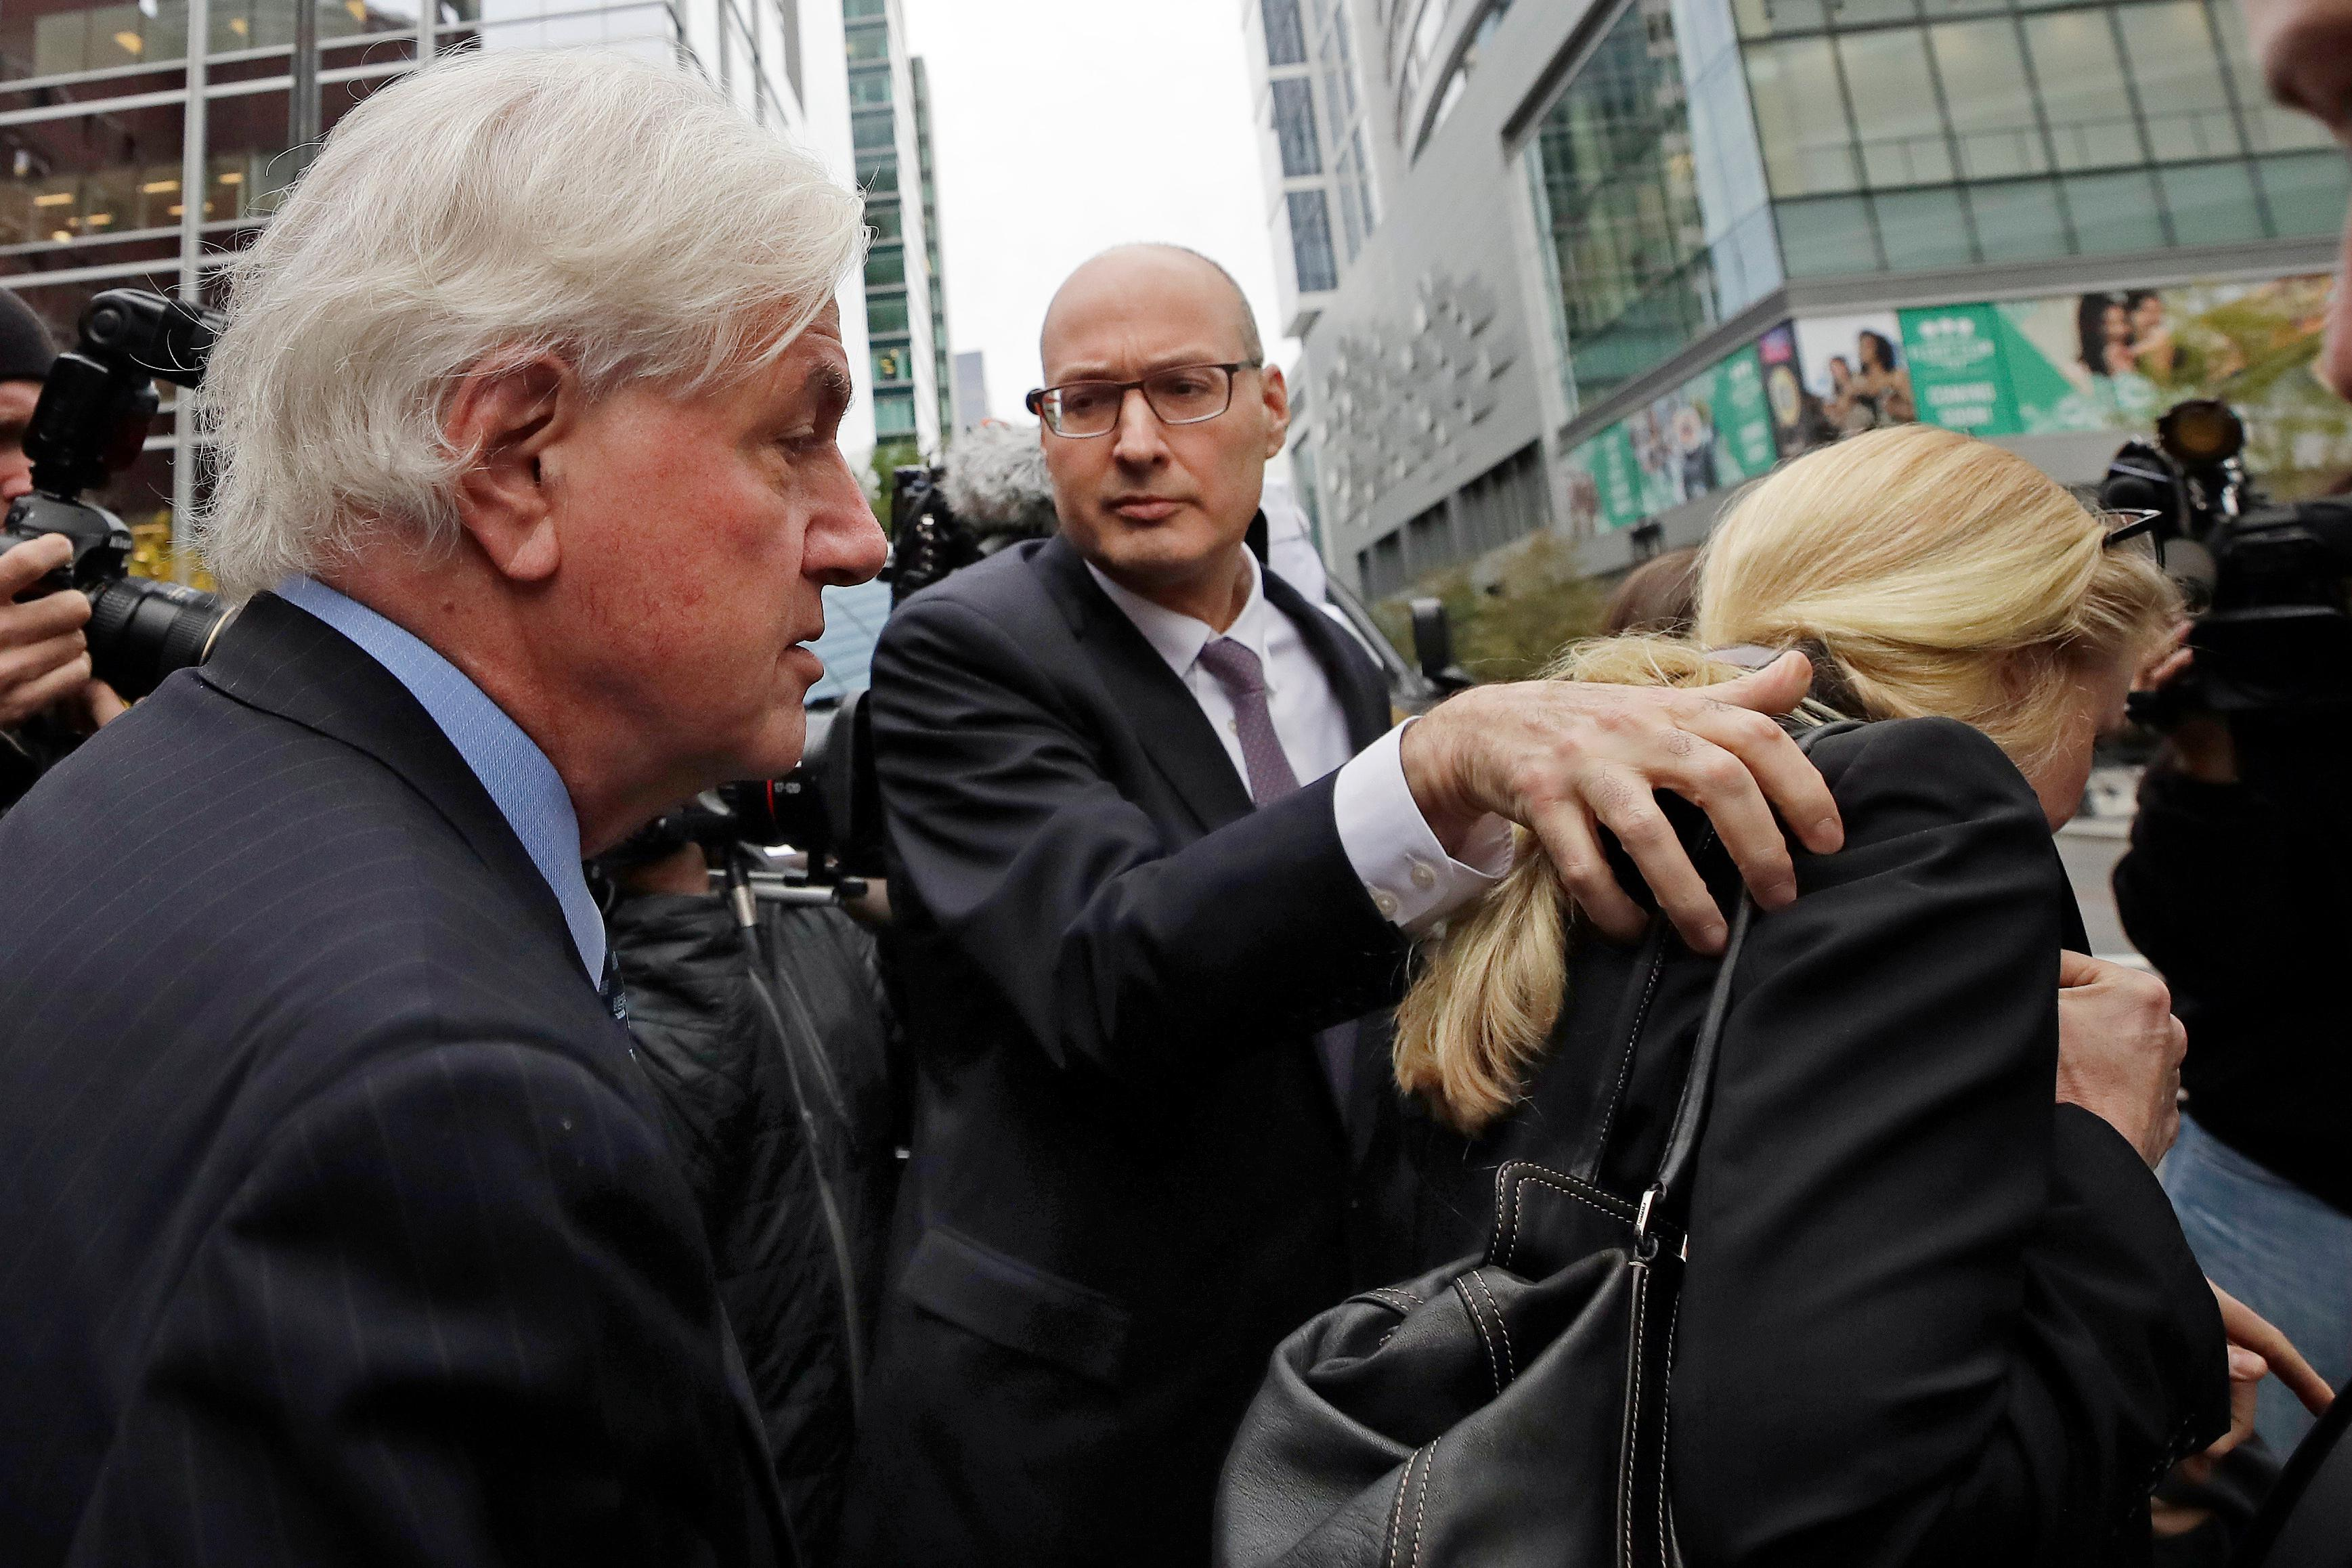 Gregory Abbott, far left, and his wife Marcia, far right, get into a car as they leave federal court after their sentencing in a nationwide college admissions bribery scandal, Tuesday, Oct. 8, 2019, in Boston. (AP Photo/Elise Amendola)